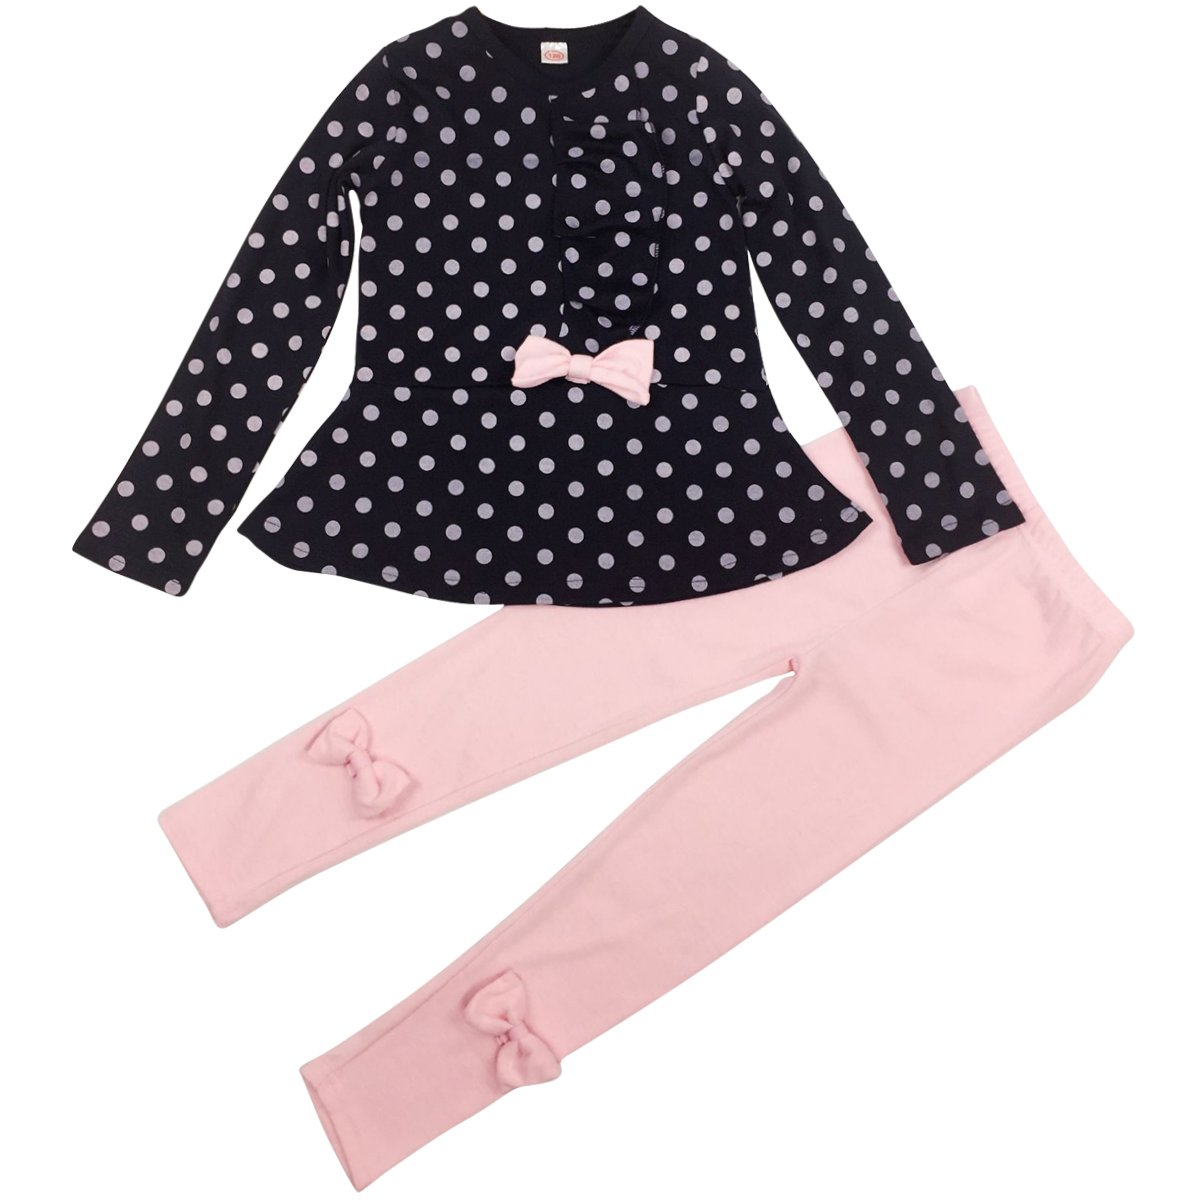 Jastore Baby Girl Cute 2pcs Set Children Clothes Suit Top and Pants Fall Clothes (4T, Navy Dot)